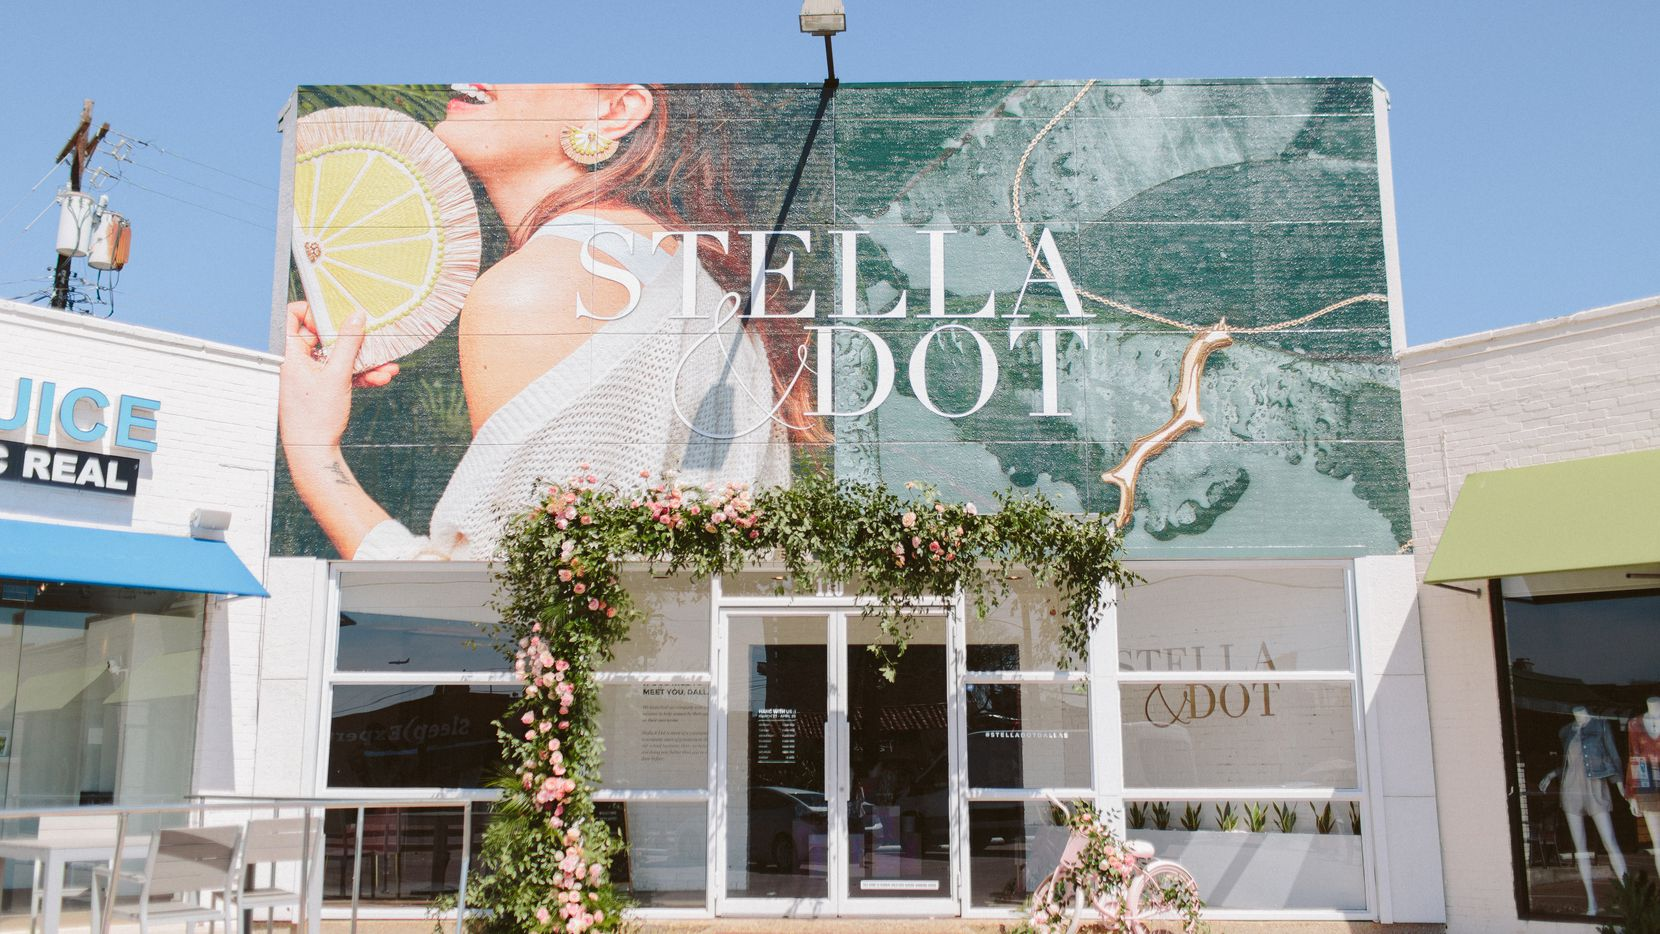 Stella & Dot will be open through April 20 at the 3010 N. Henderson in Dallas.